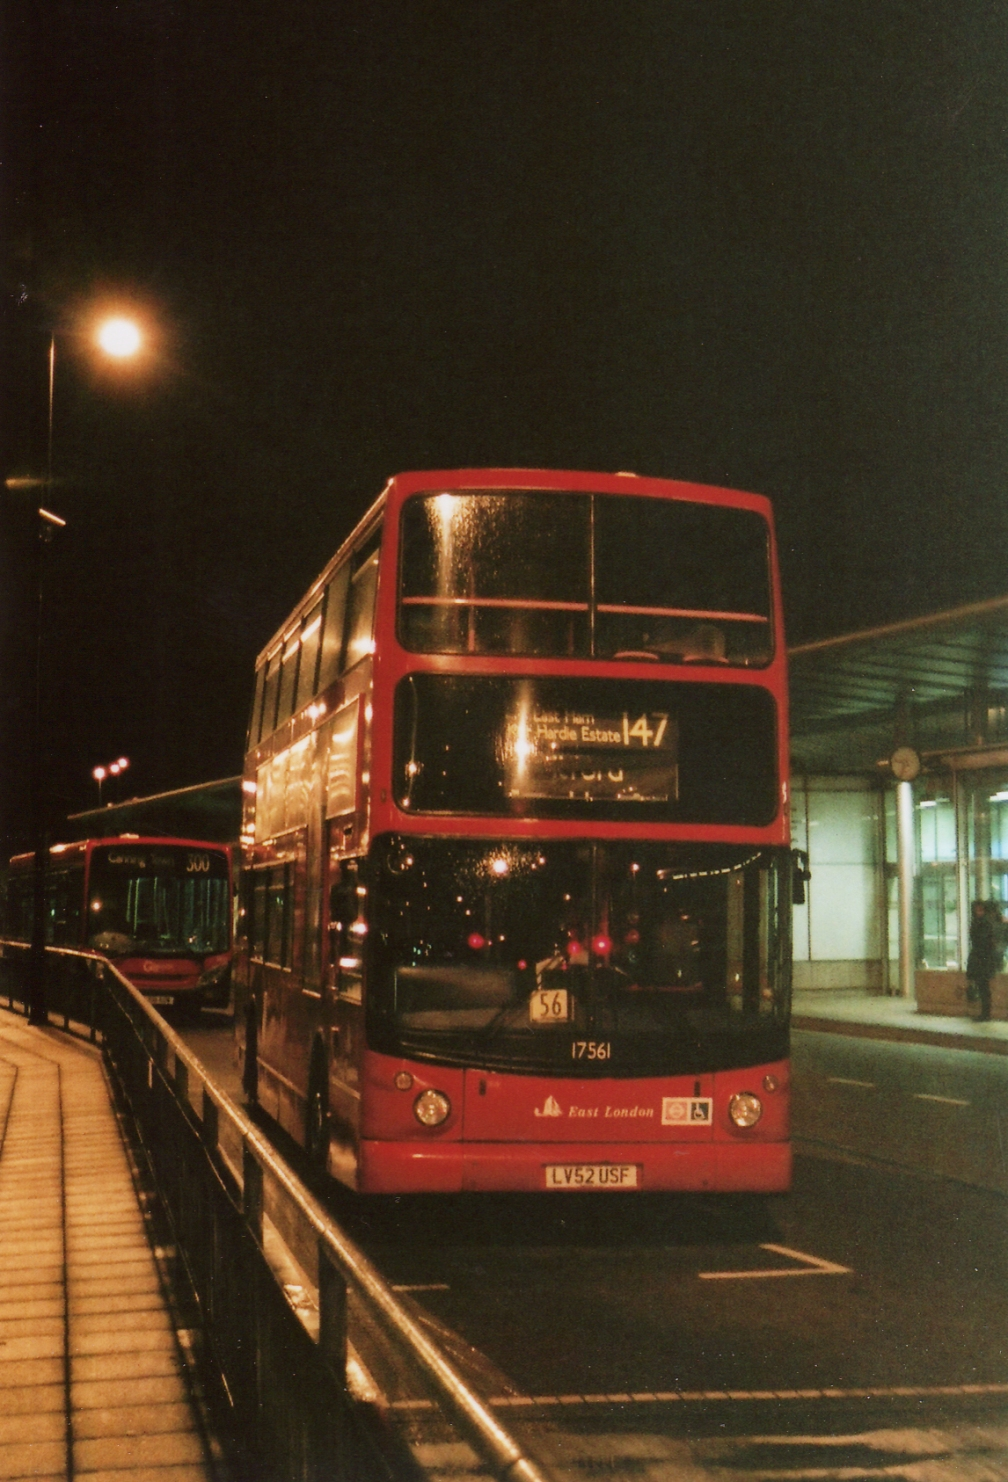 LV52USF 17561 CANNING TOWN 9-10